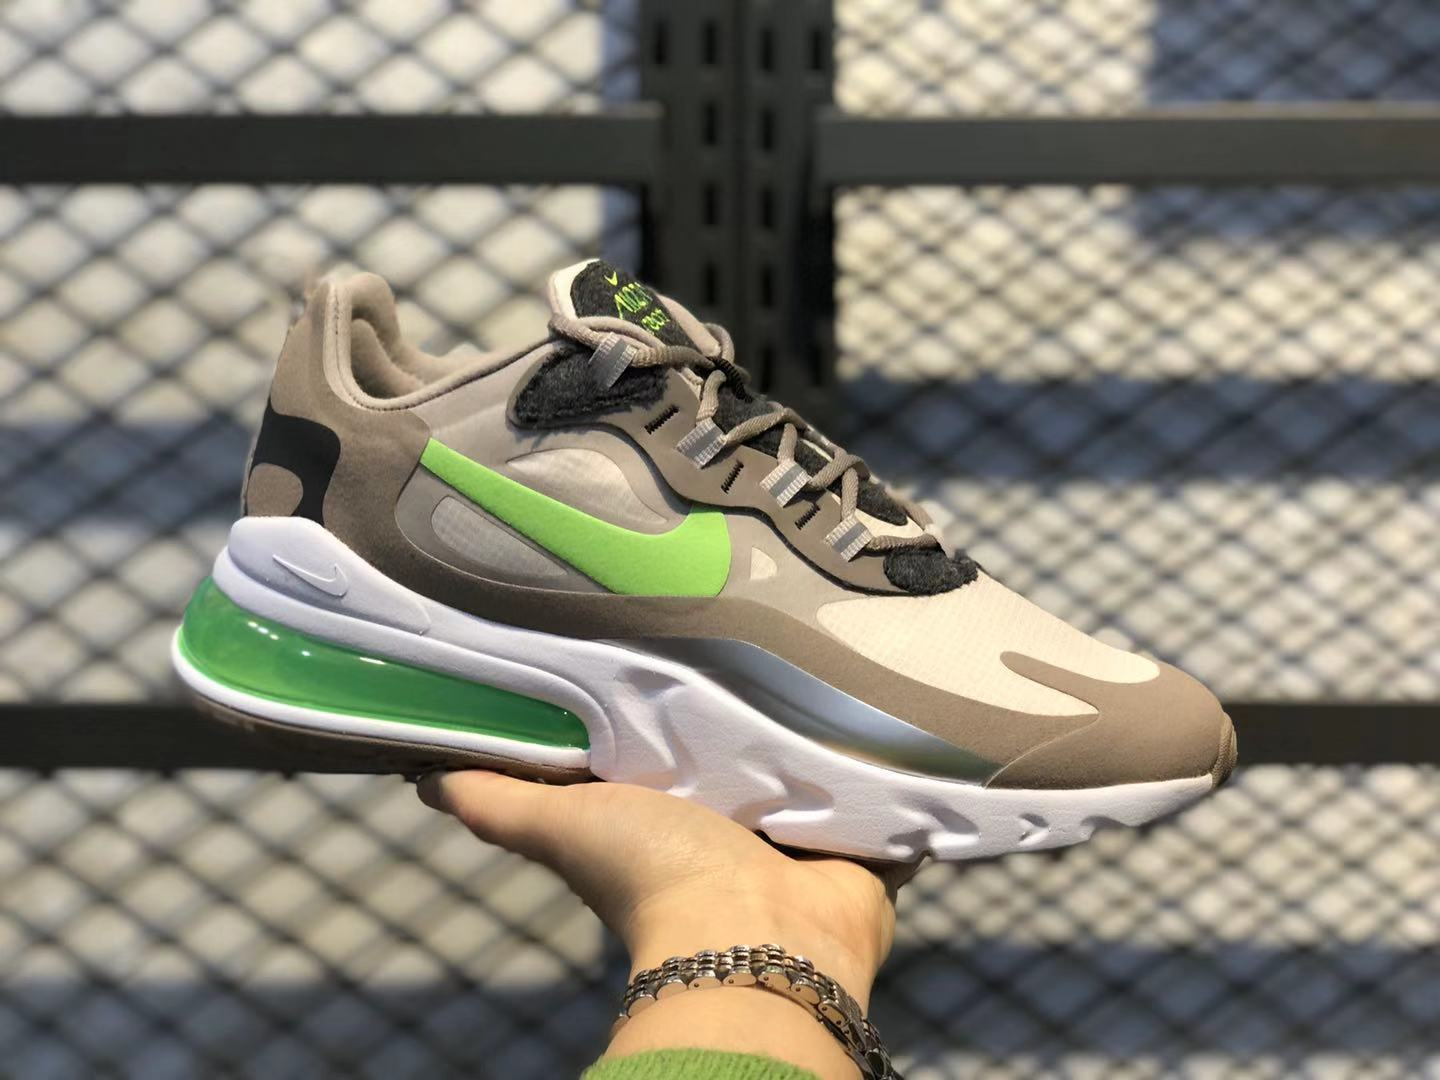 Nike React Air Max 270 Just Do It Brown/White-Pine Green For Online Sale